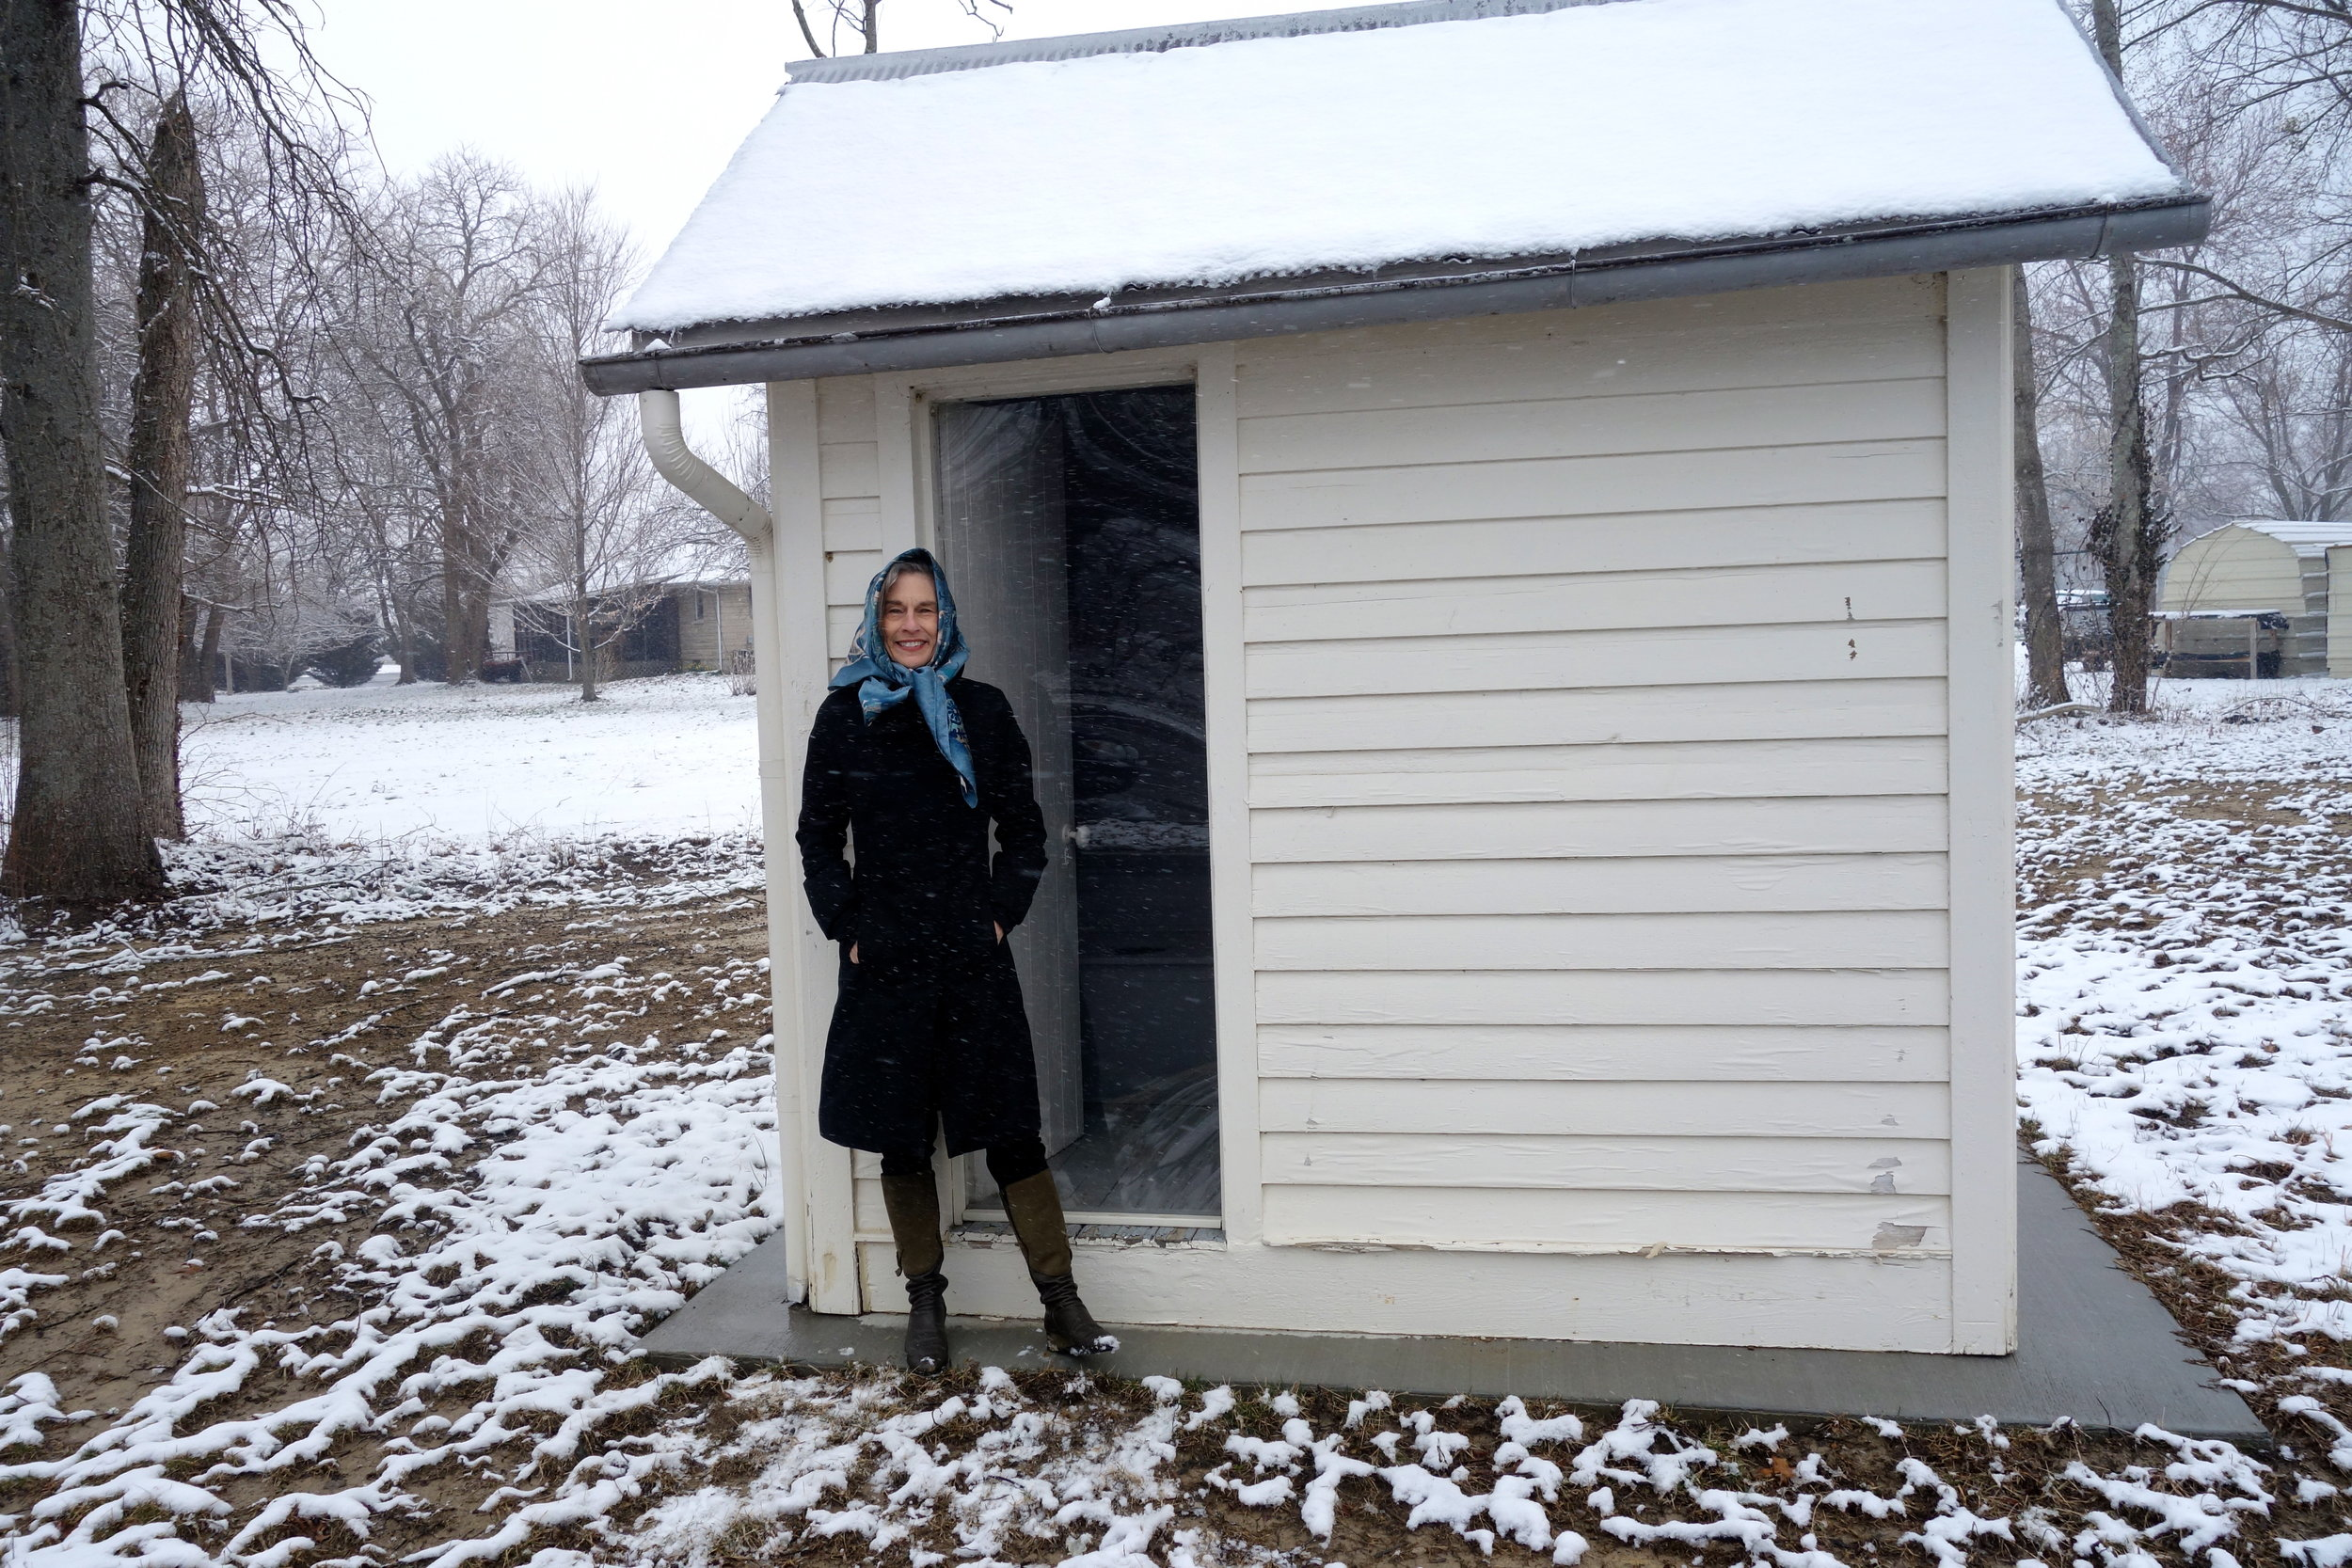 There are many restored Rosenwald schools but, as far as I know, only one restored outhouse (though this was a feature of all the schools). Here I am checking it out in Sadieville, Kentucky.